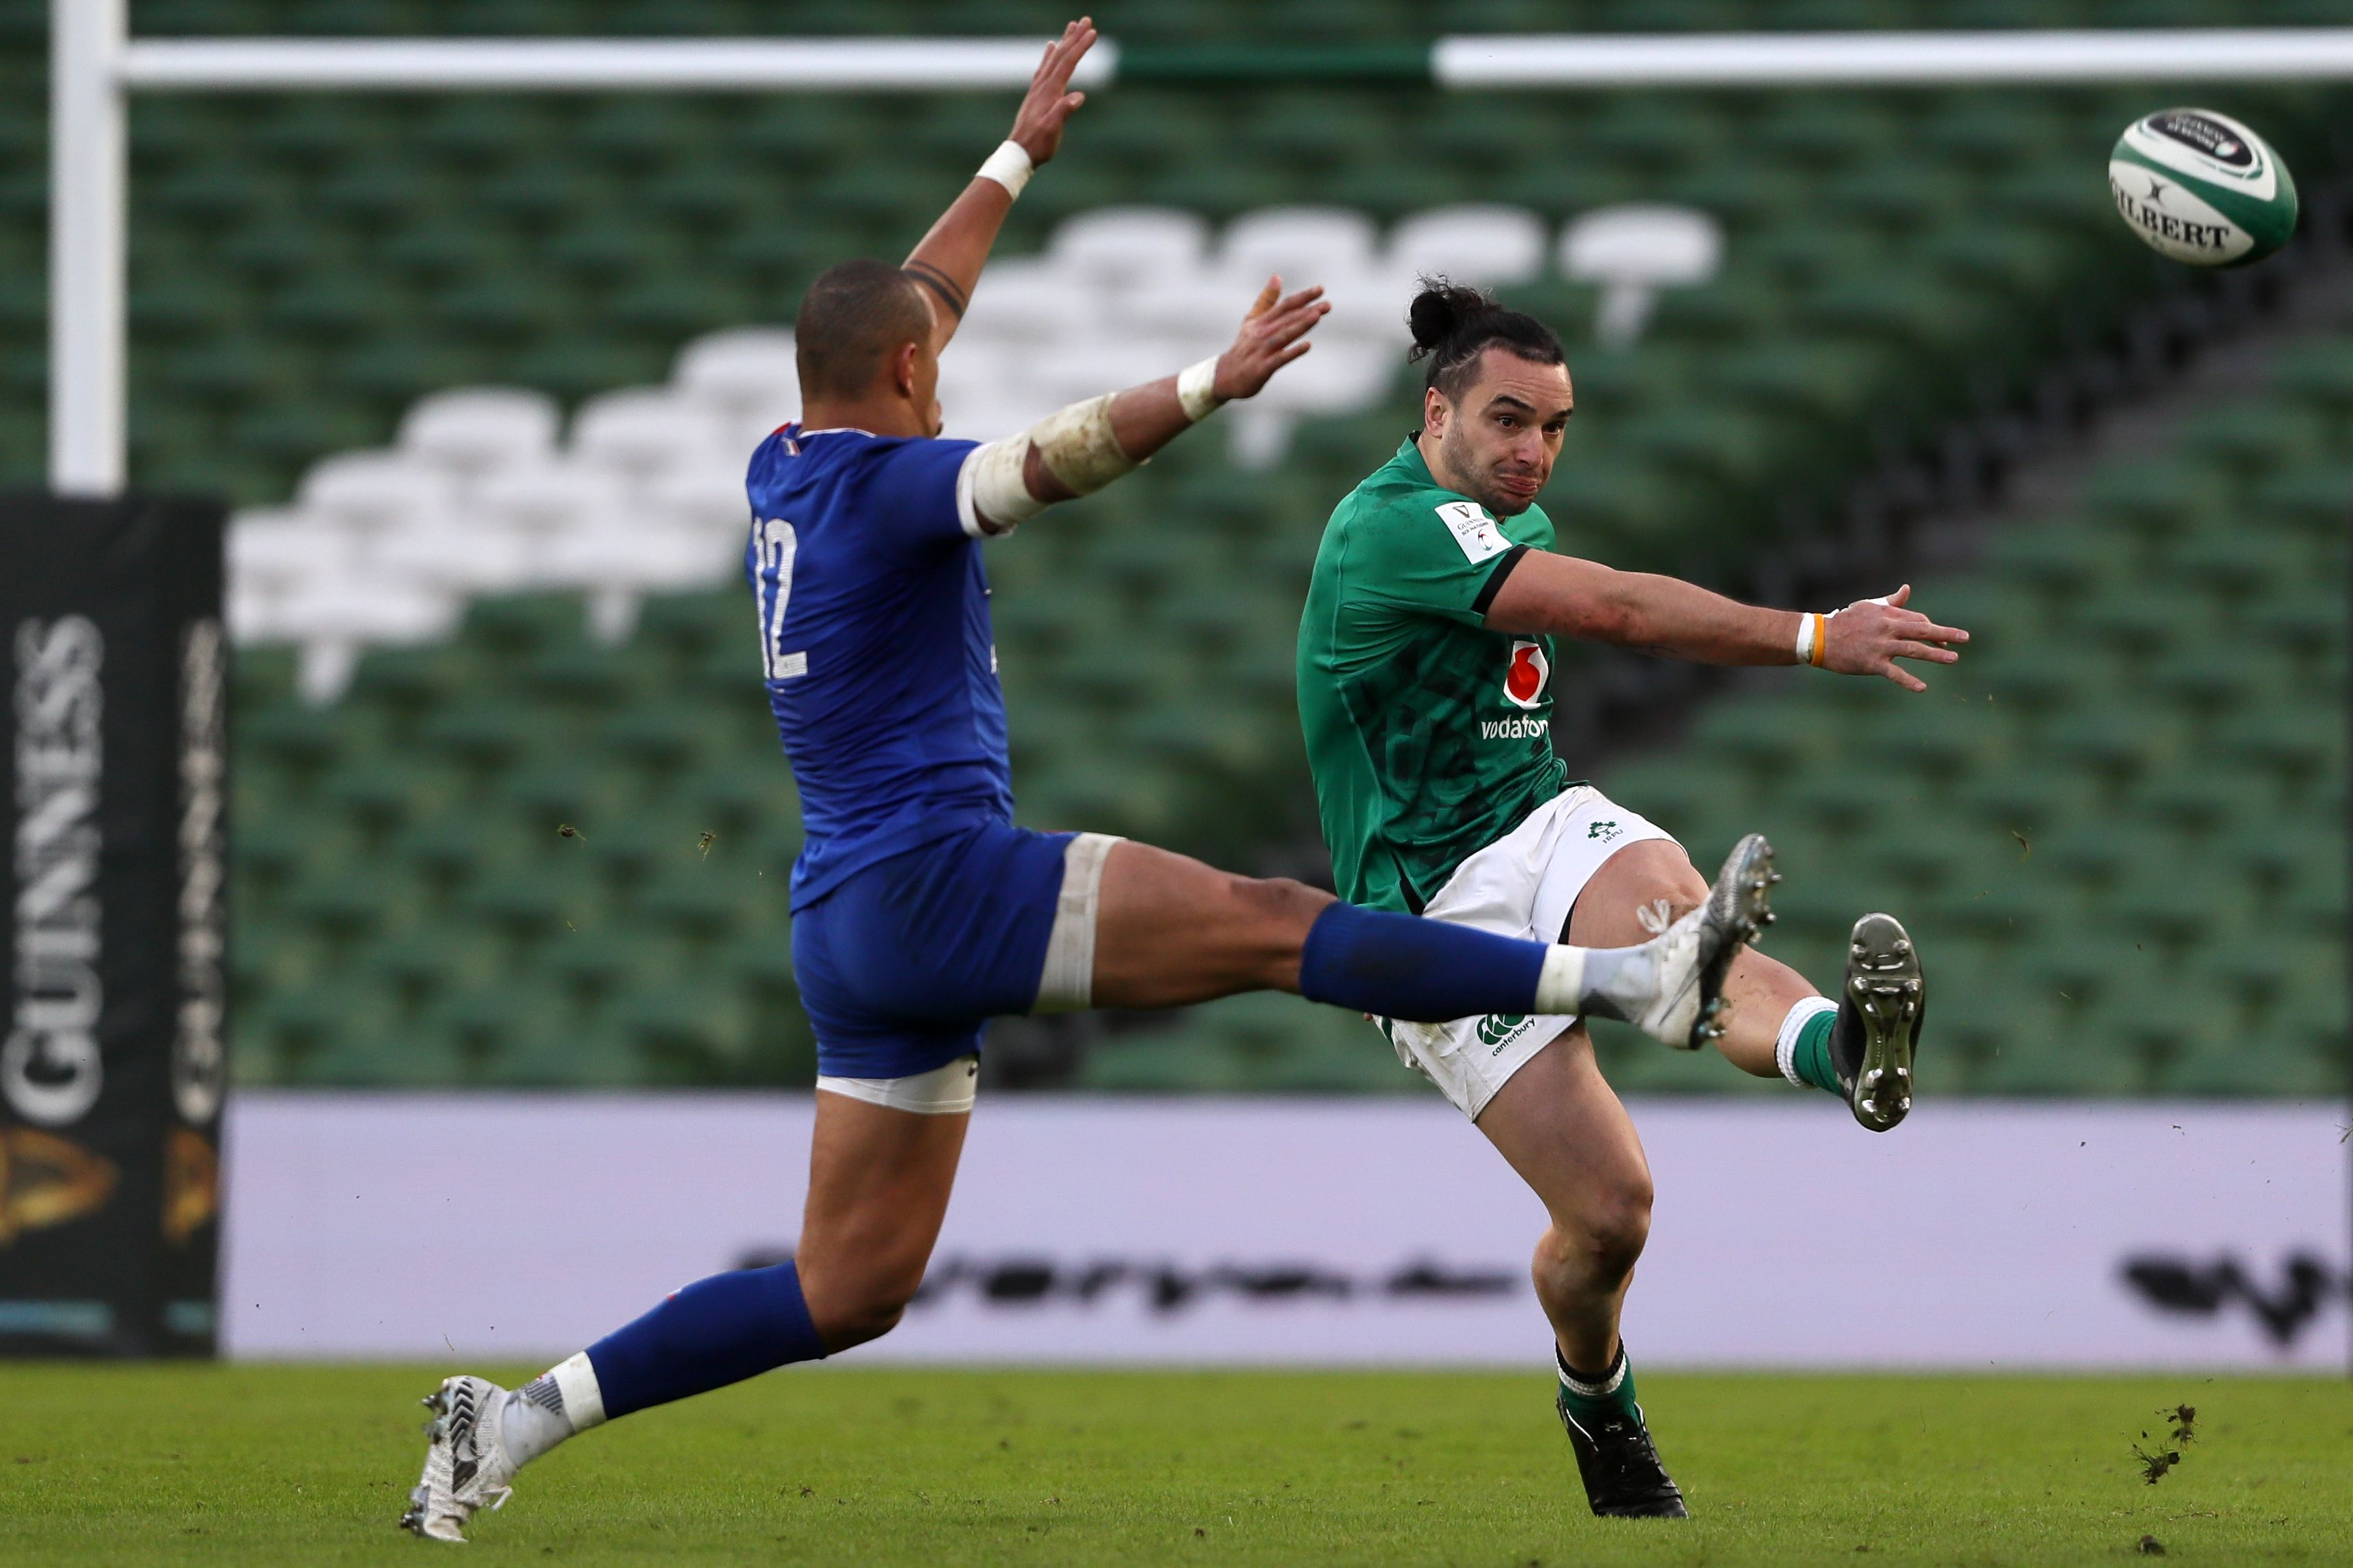 Rugby Explained: When to kick and when to run - Rugby World